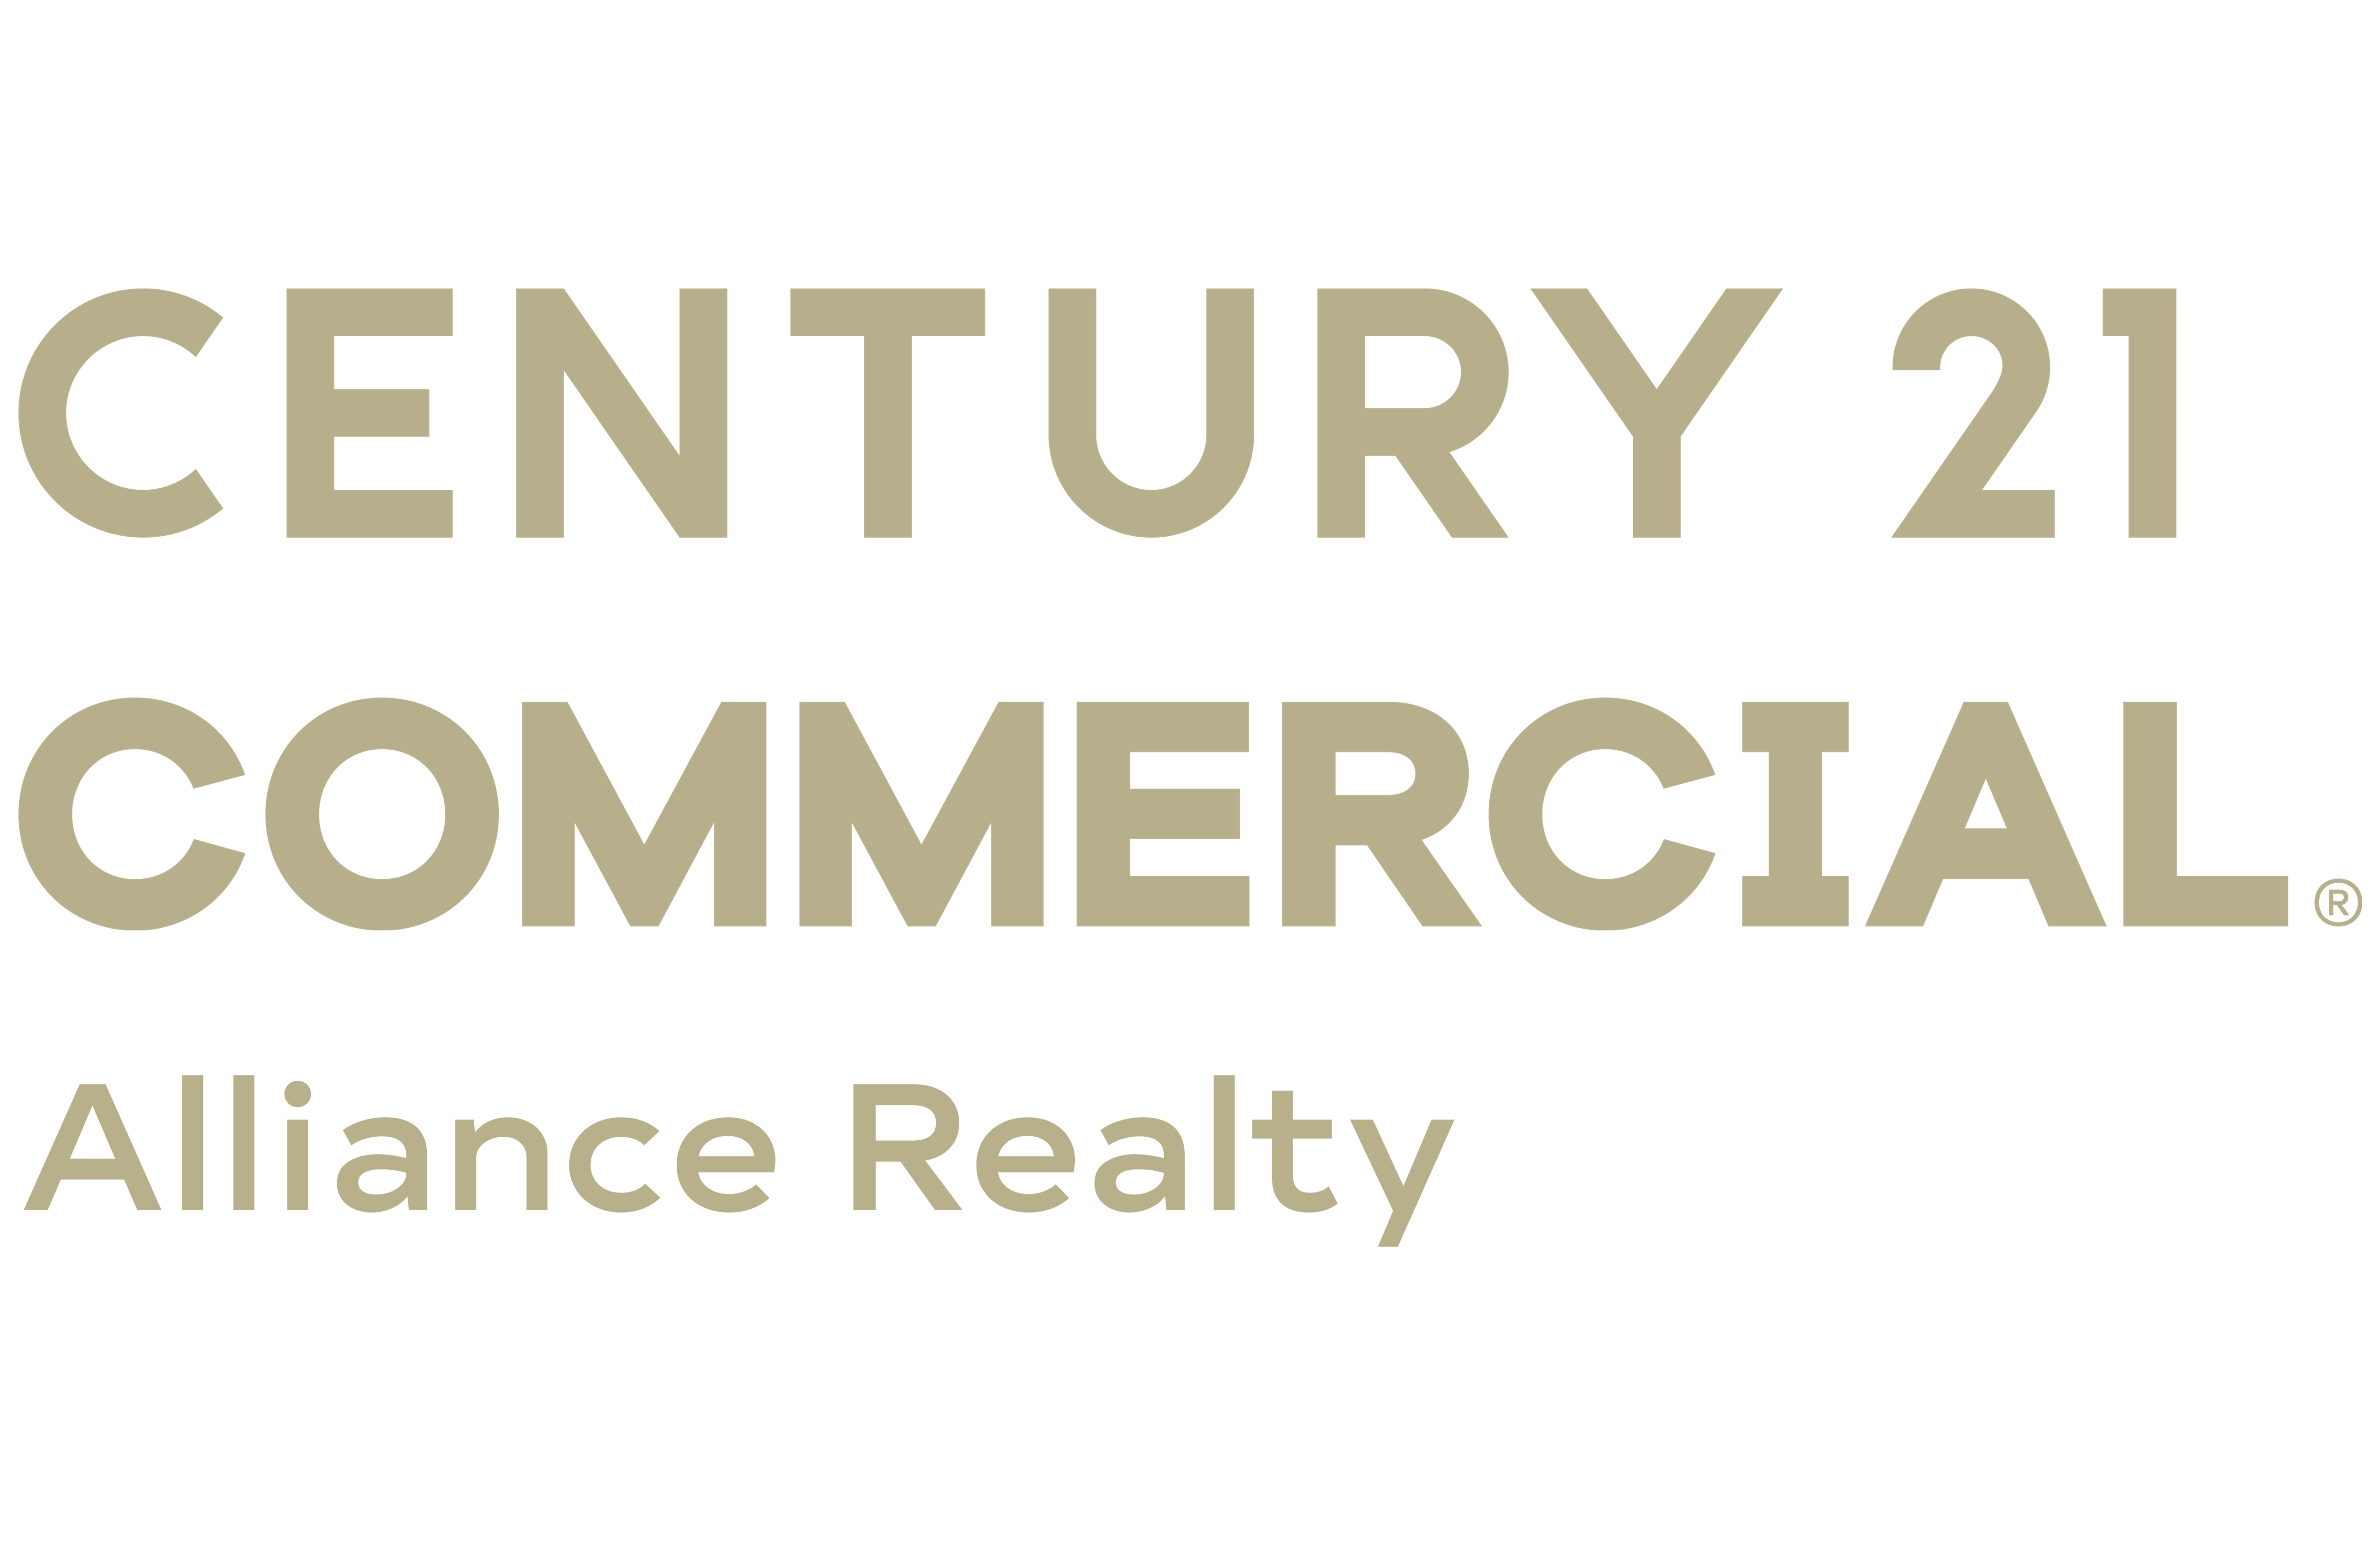 Gary . Schraut of CENTURY 21 Alliance Realty logo